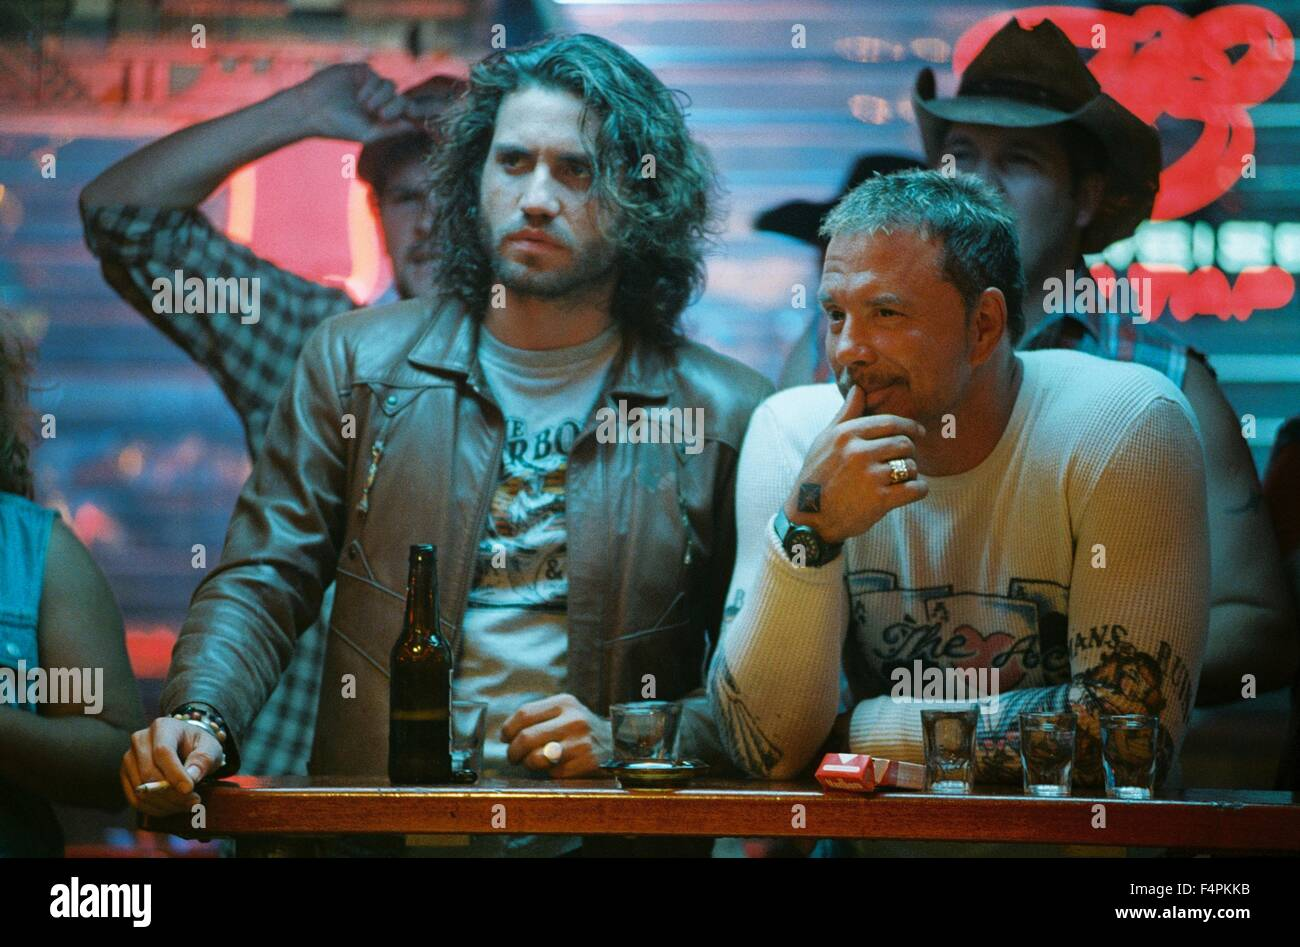 Mickey Rourke and Edgar Ramirez / Domino / 2005 directed by Tony Scott [New Line Cinema] - Stock Image